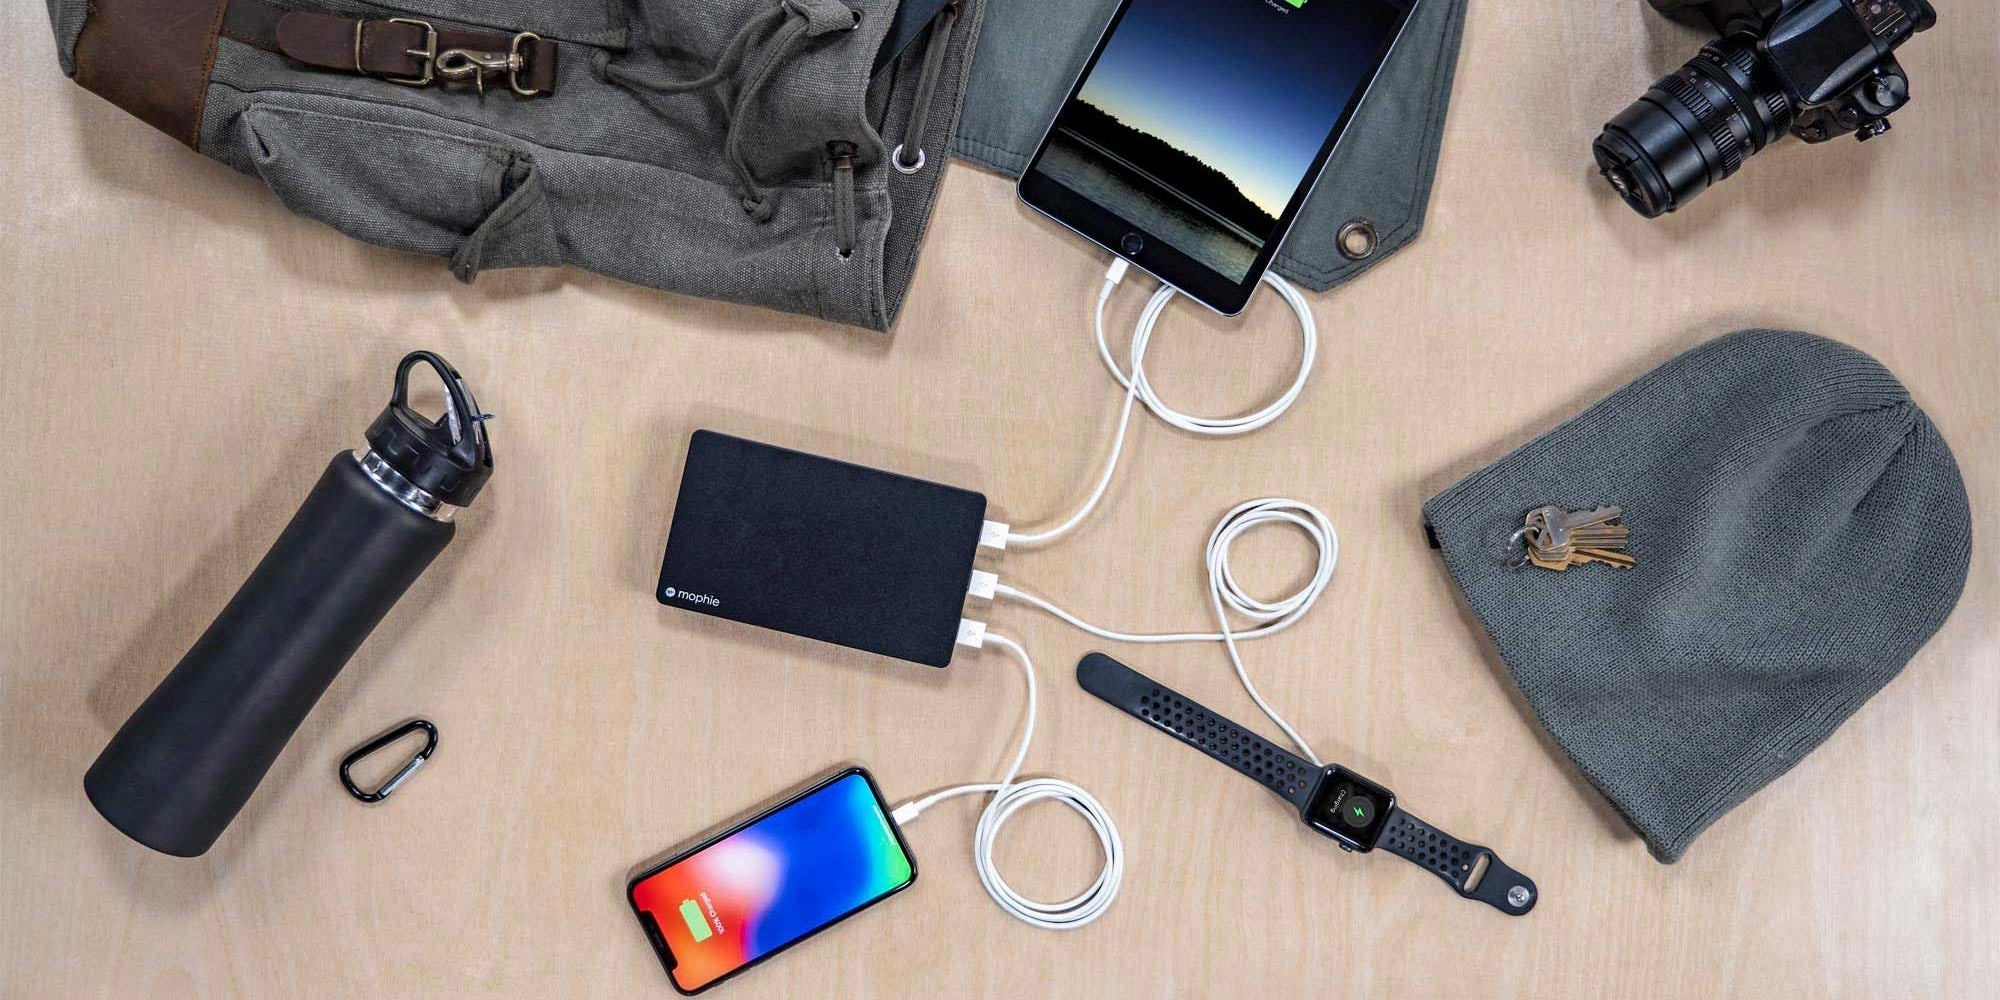 mophie powerstation XXL charging multiple devices